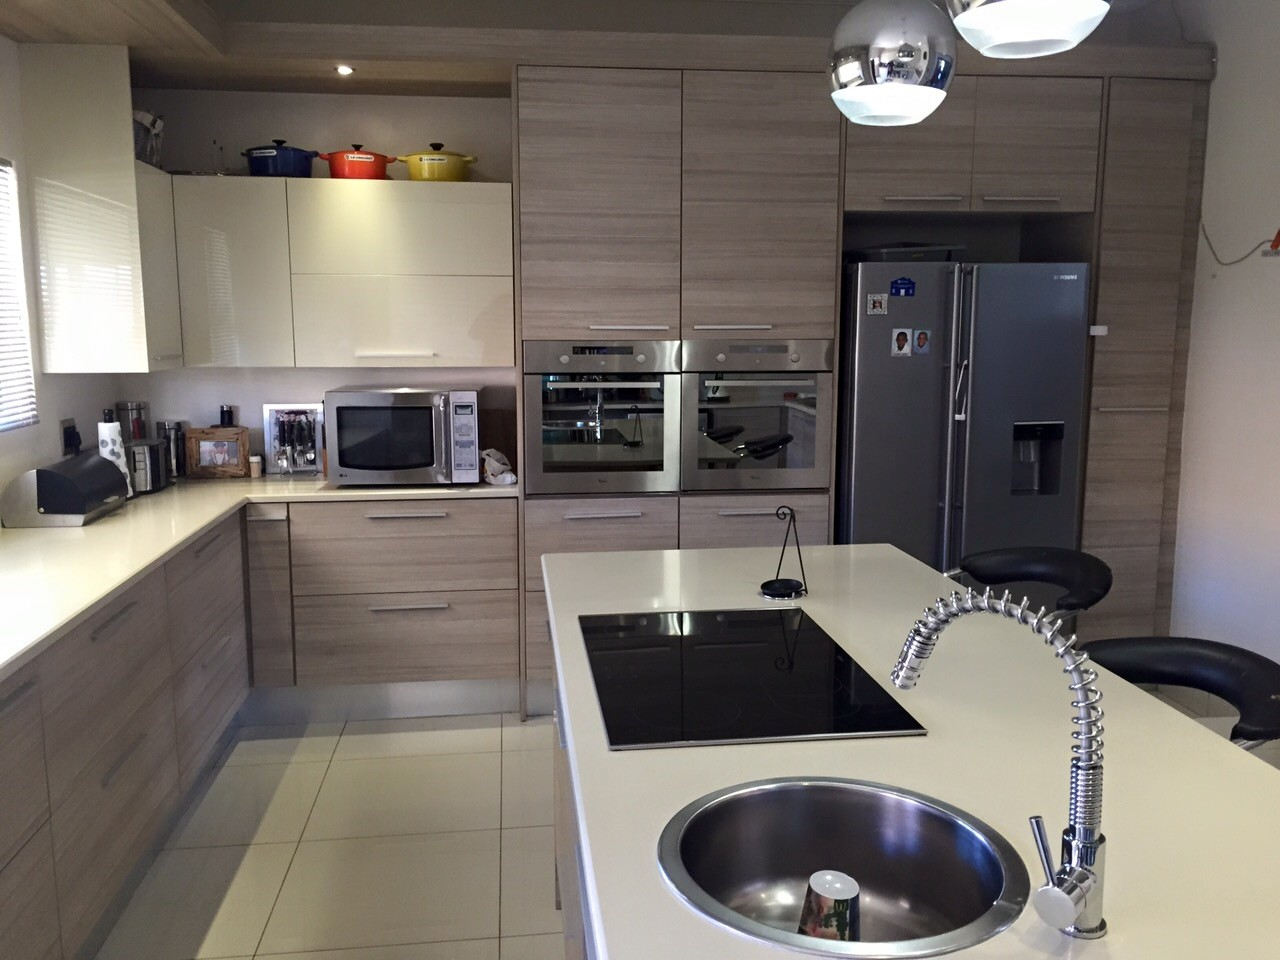 Appleberry design appleberry design kitchen design for Kitchen designs for small kitchens south africa